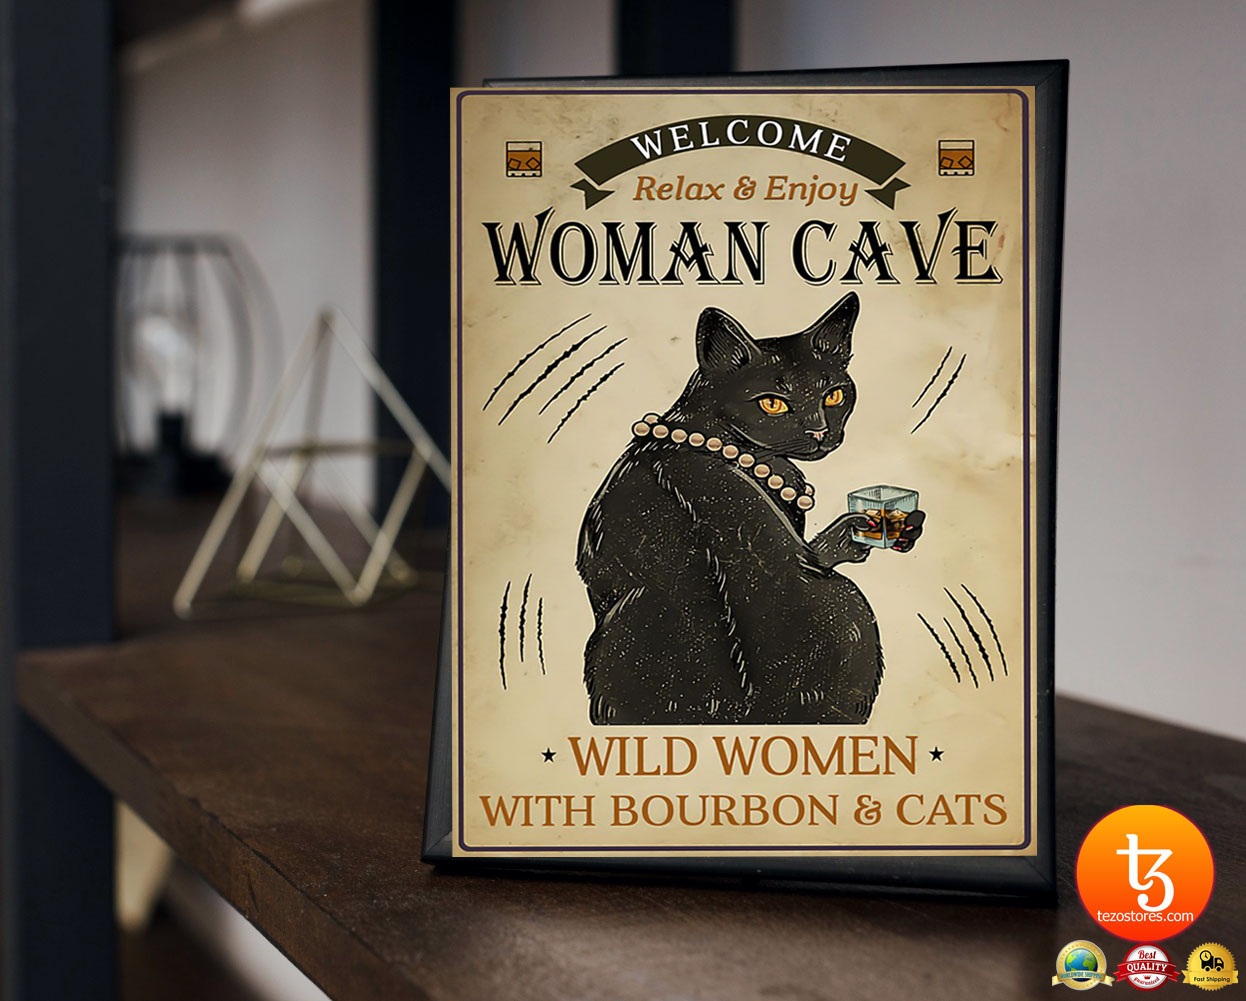 Welcome relax enjoy woman cave will women with bourbon and cats poster 23